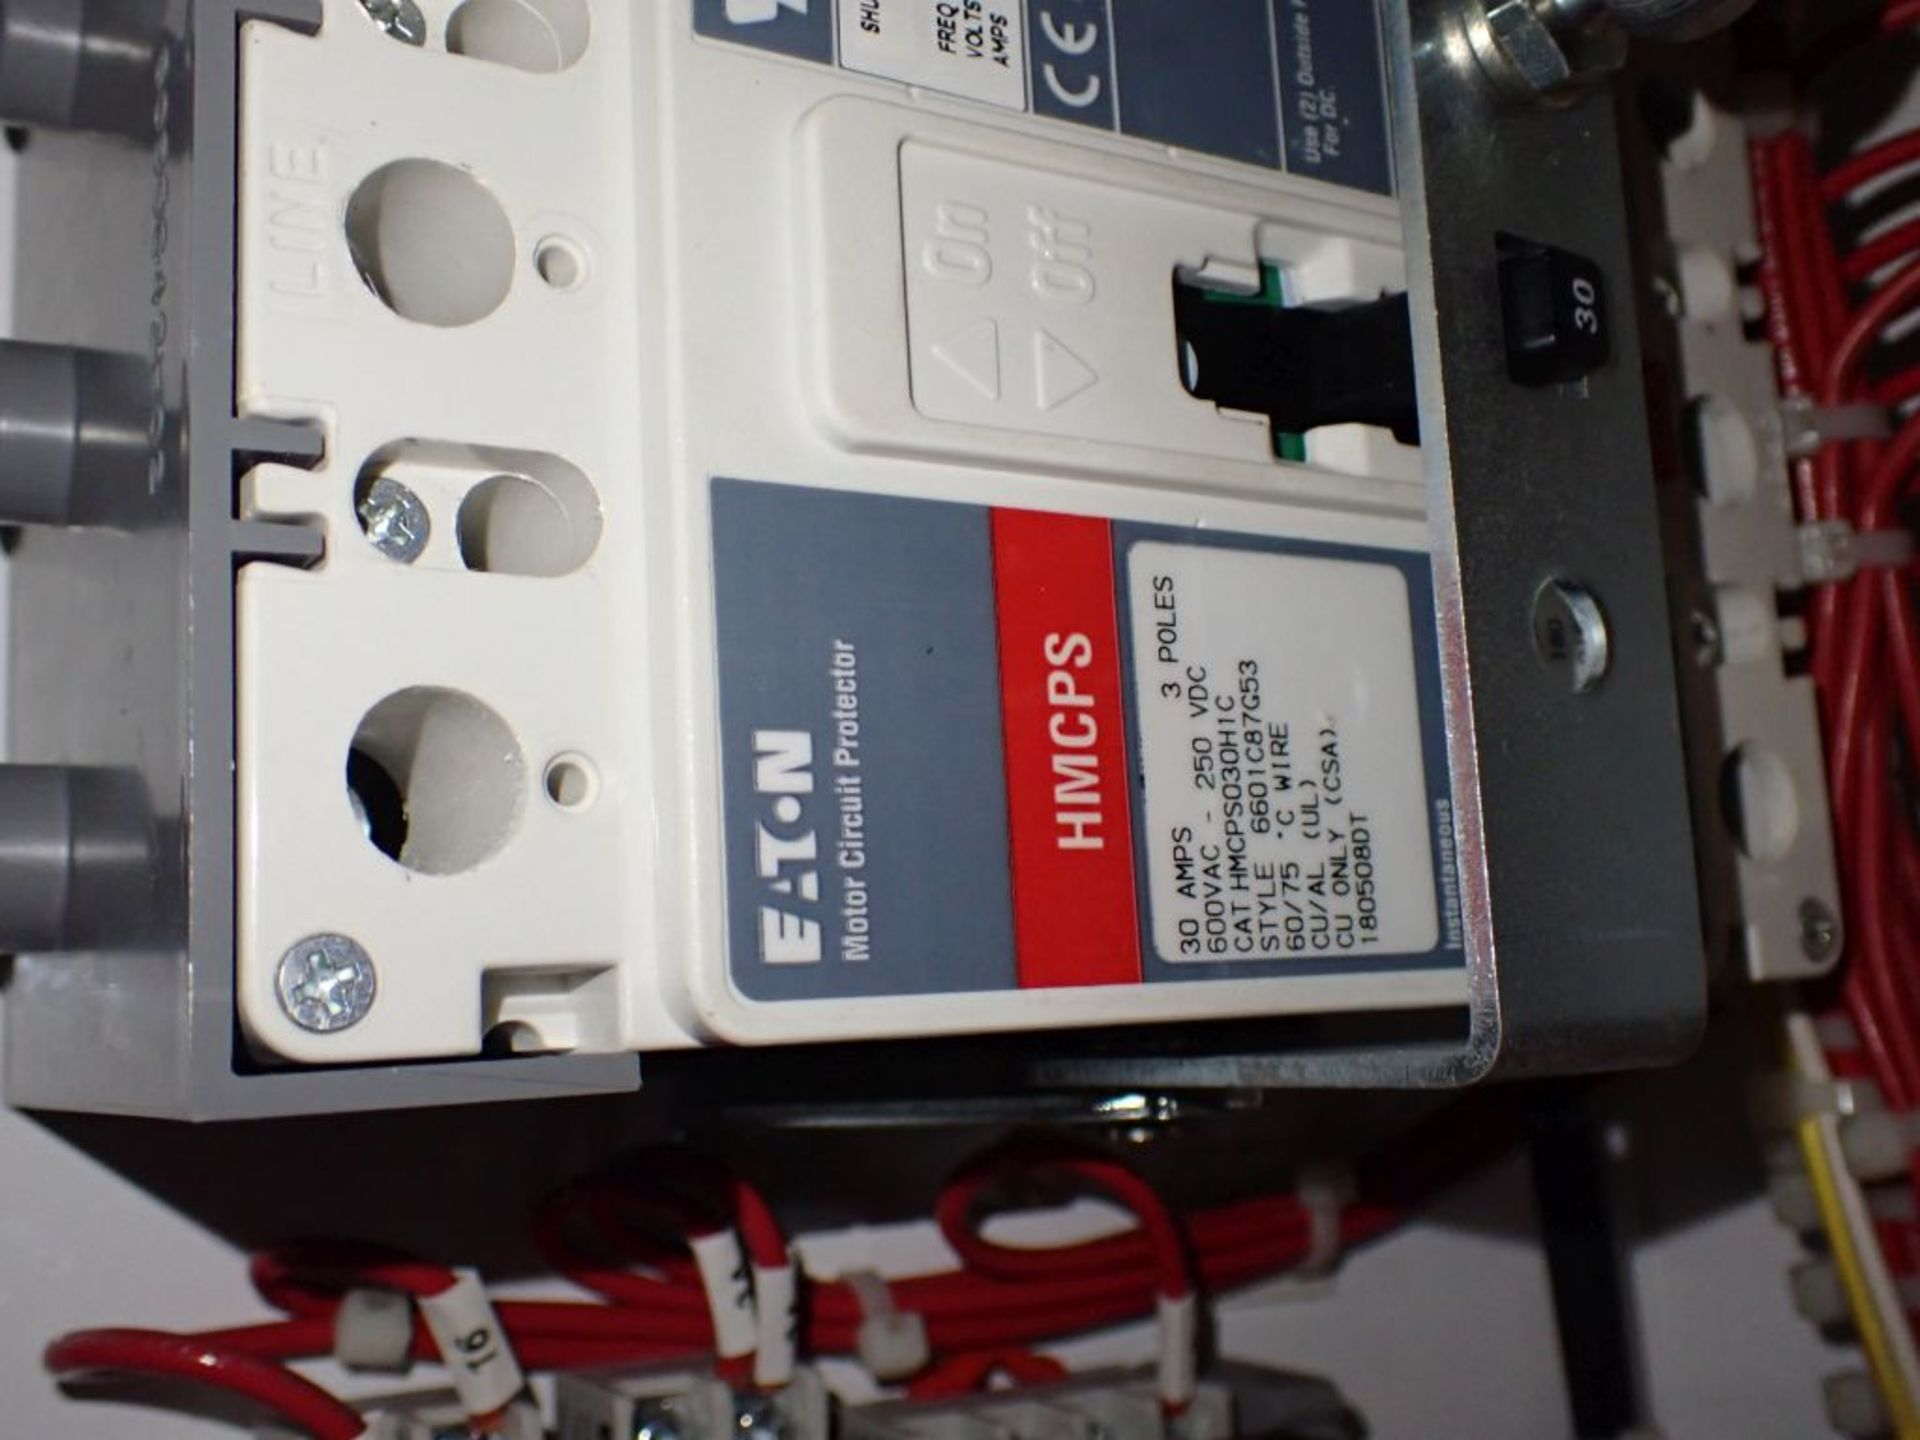 Eaton Freedom 2100 Series Motor Control Center | (11) F206-30A-10HP; (5) F206-15A-10HP; (1) SVX900- - Image 94 of 102